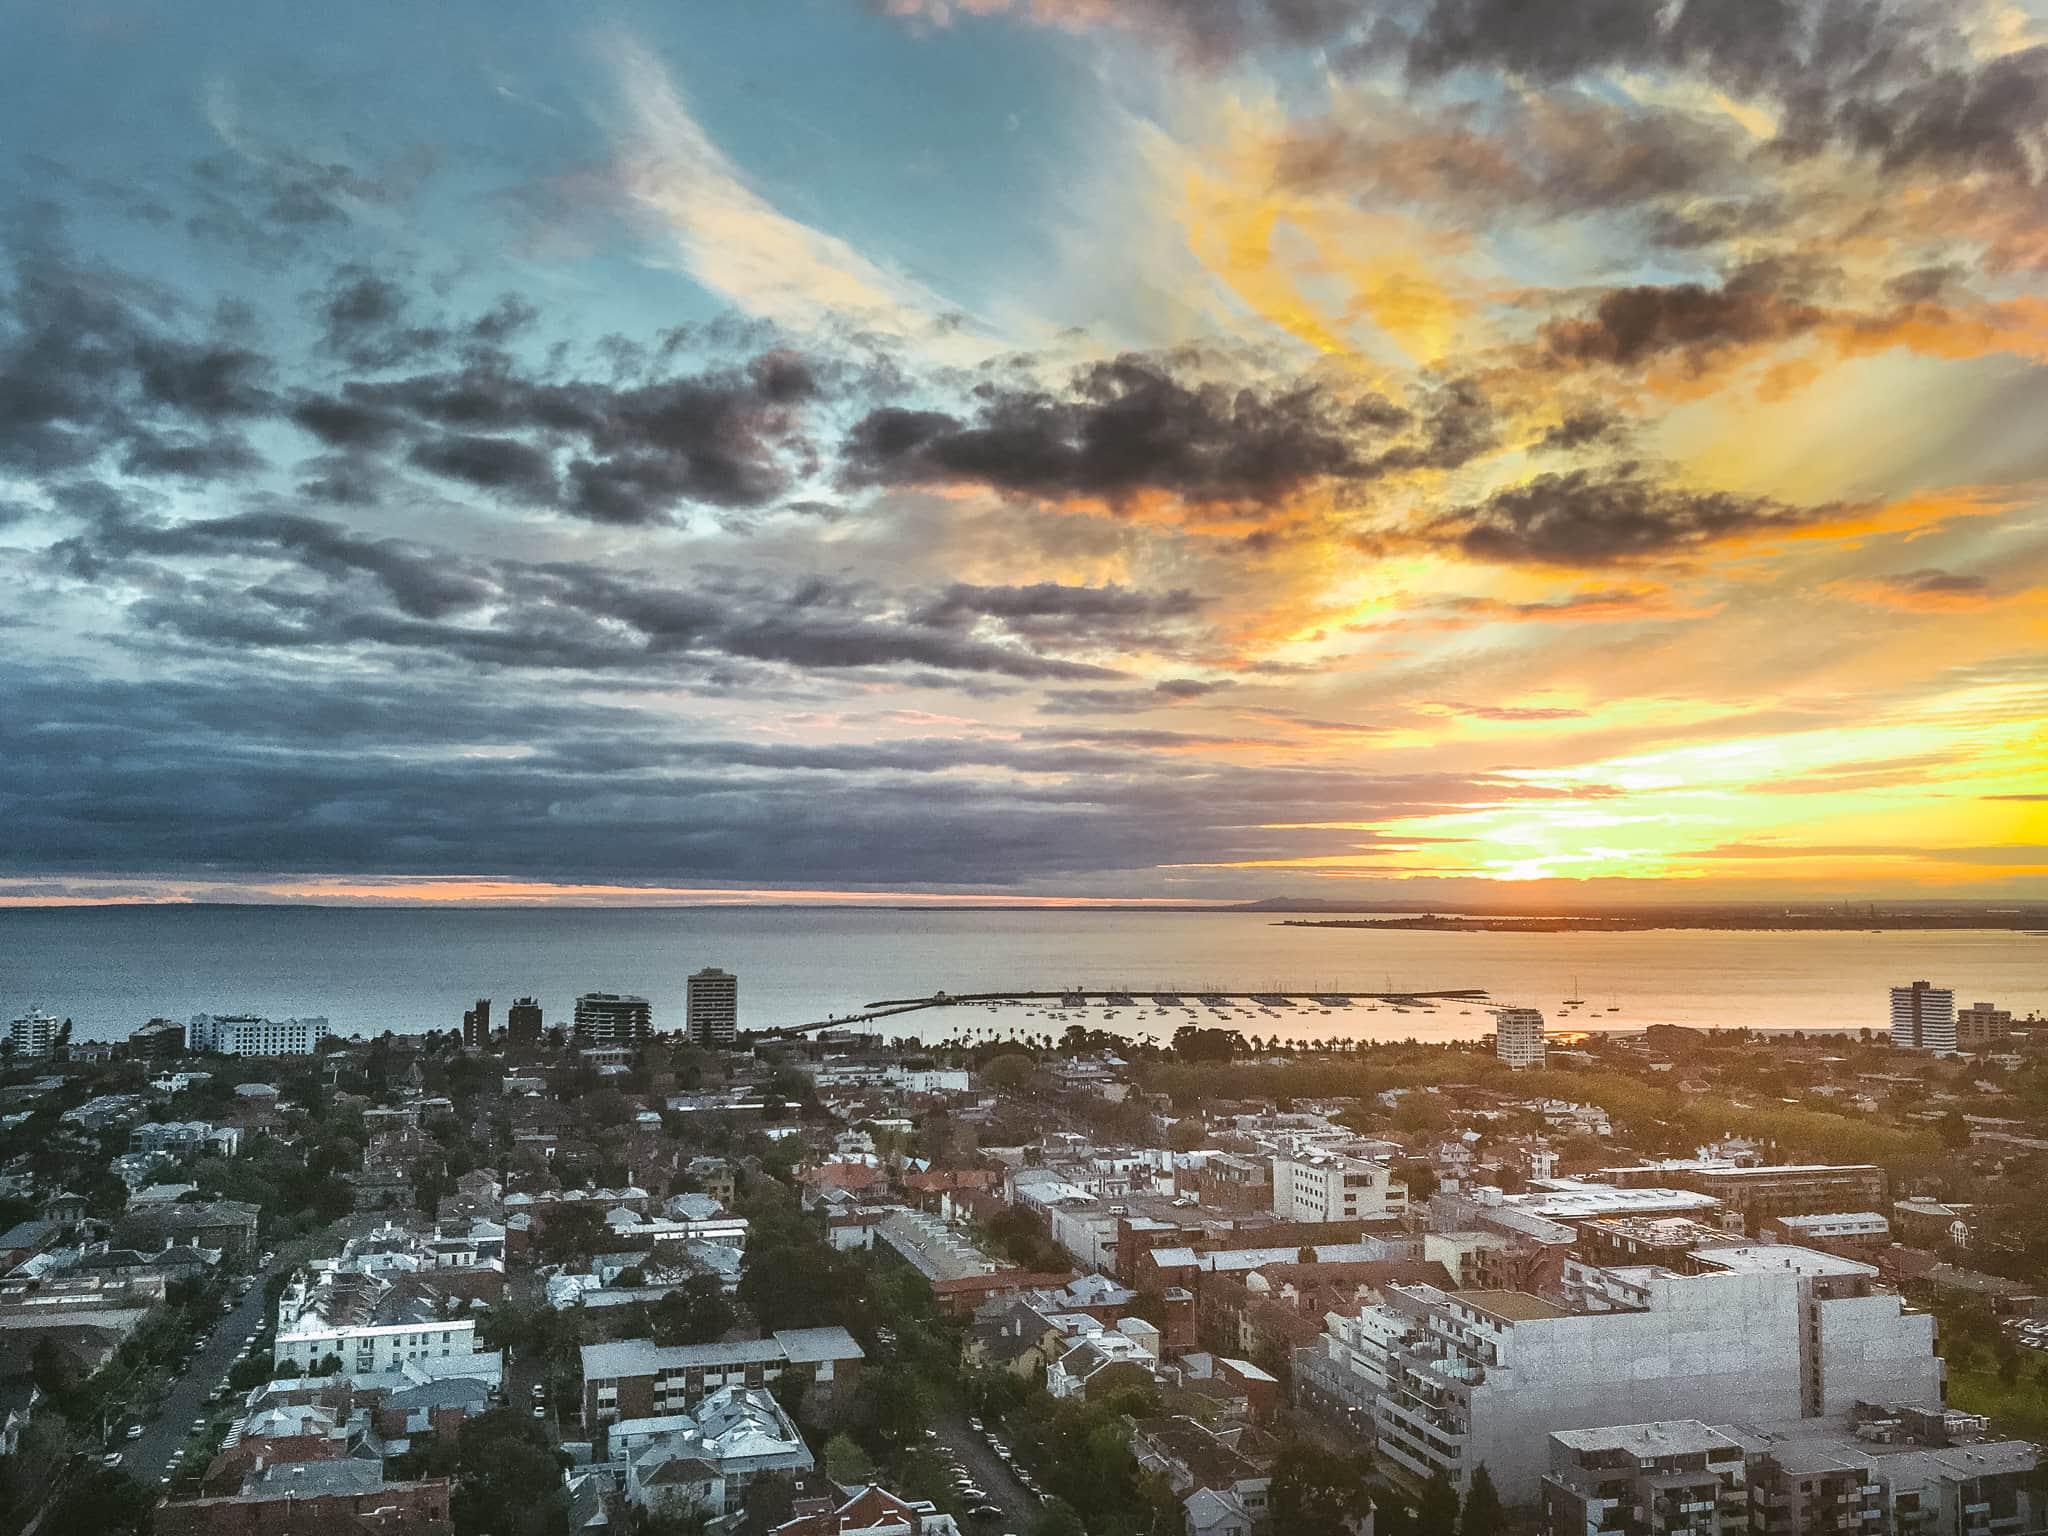 St Kilda Sunset from highrise  building - wedding photography st kilda in melbourne